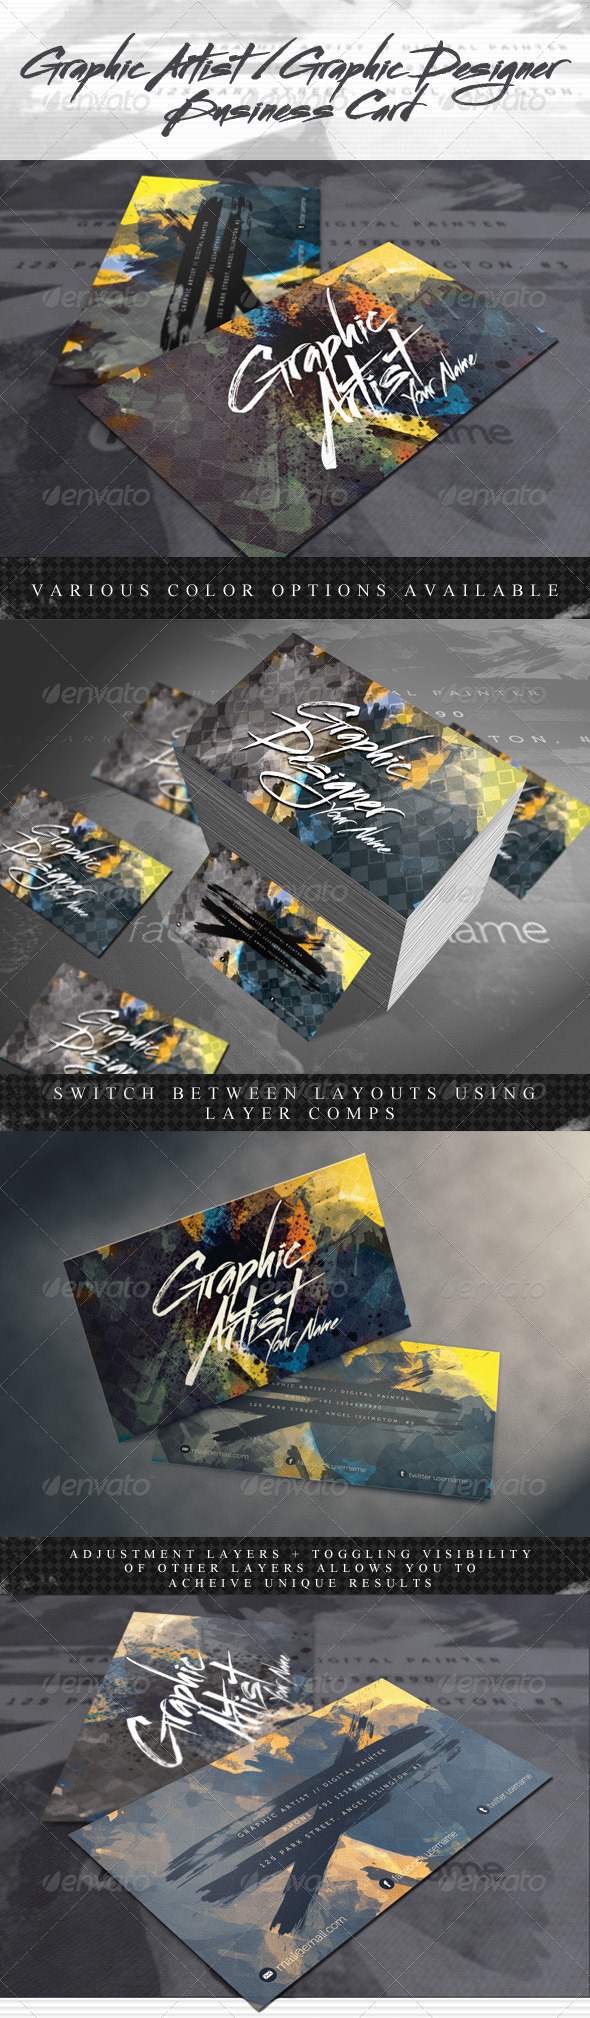 GraphicRiver Artistic Business Card for Artists & Designers 1197973